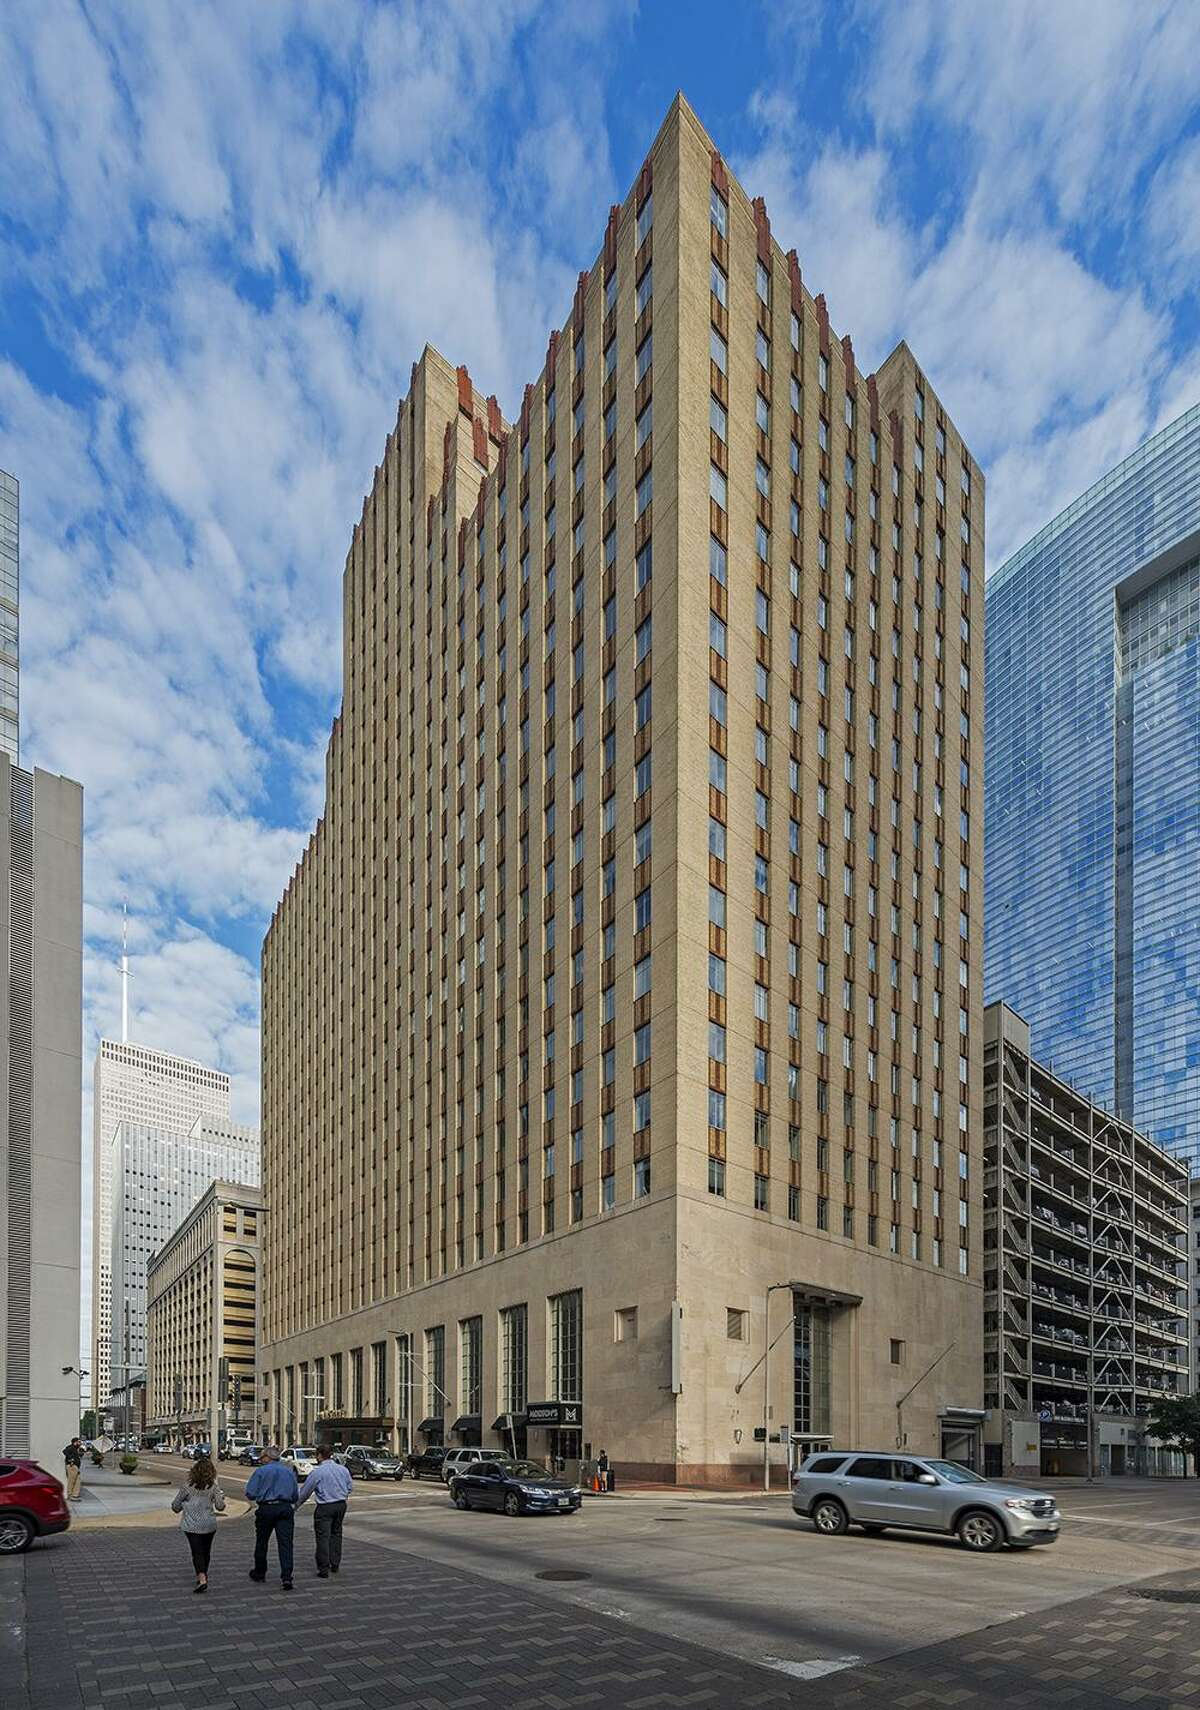 Over the past twelve months, Stream Realty Partners has completed more than 75,000 square feet of leases at 1001 McKinney, a historic downtown building, representing over 20 percent of the building's rentable space. New owners TRC Capital Partners and Amstar America have kept Stream Realty as its leasing agent.